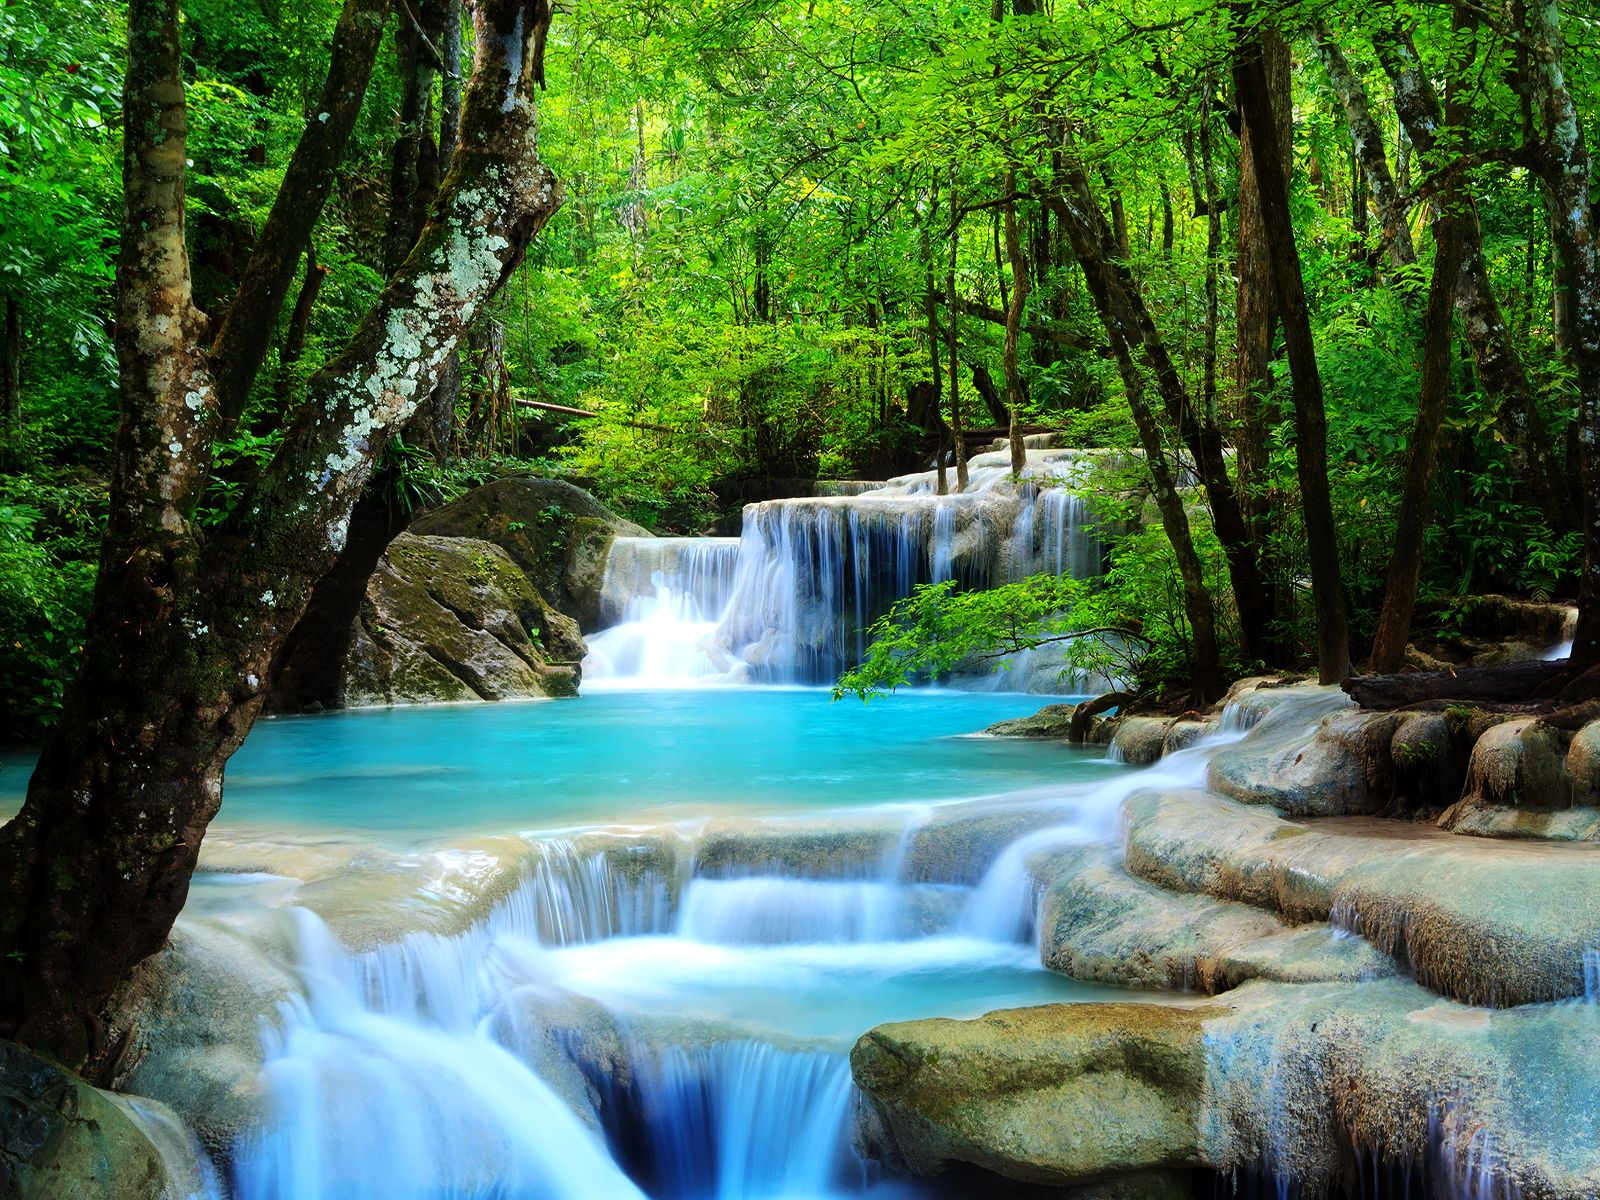 Free Download Download Beautiful Waterfall Pictures In High Definition Or Widescreen 1600x1200 For Your Desktop Mobile Tablet Explore 74 Beautiful Background Images Pretty Wallpapers For Computers Beautiful Pictures For